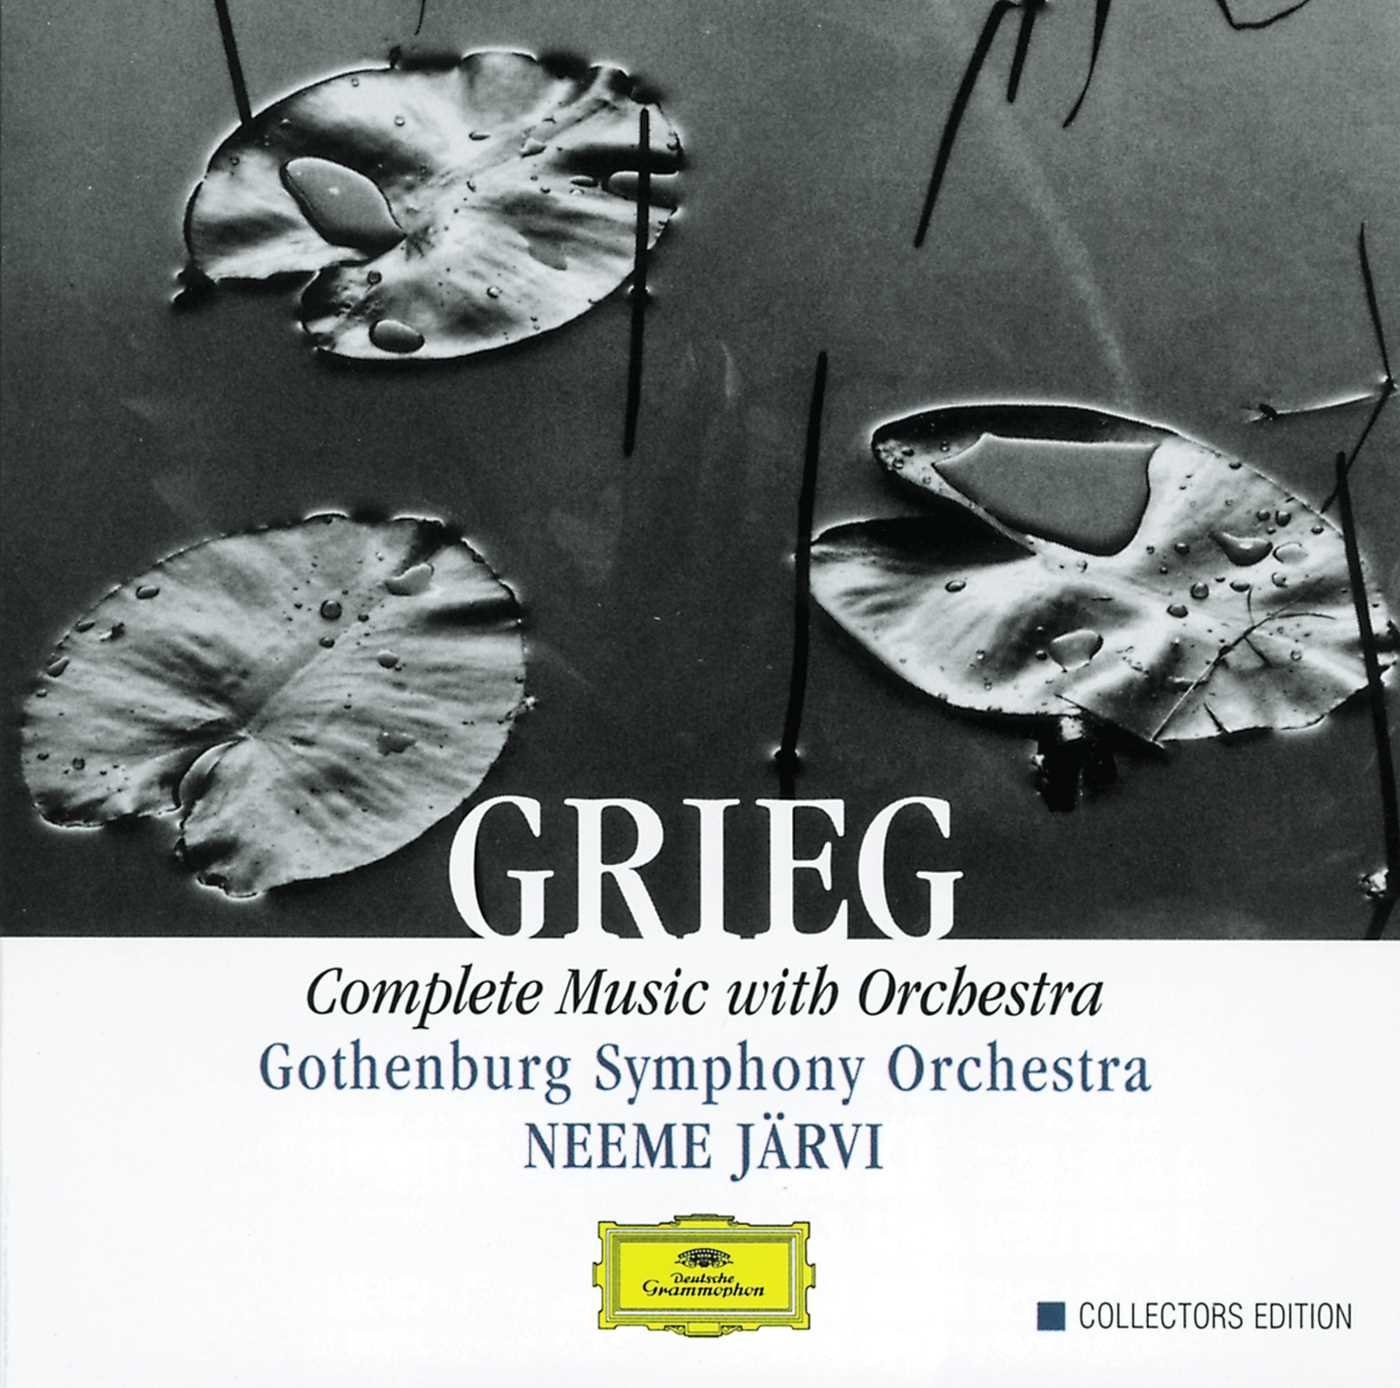 Grieg: Complete Music With Orchestra by BOX IRRESISTIBILI, BOX CLASSICA, ROMANTICO, MUSICA SINFONICA,